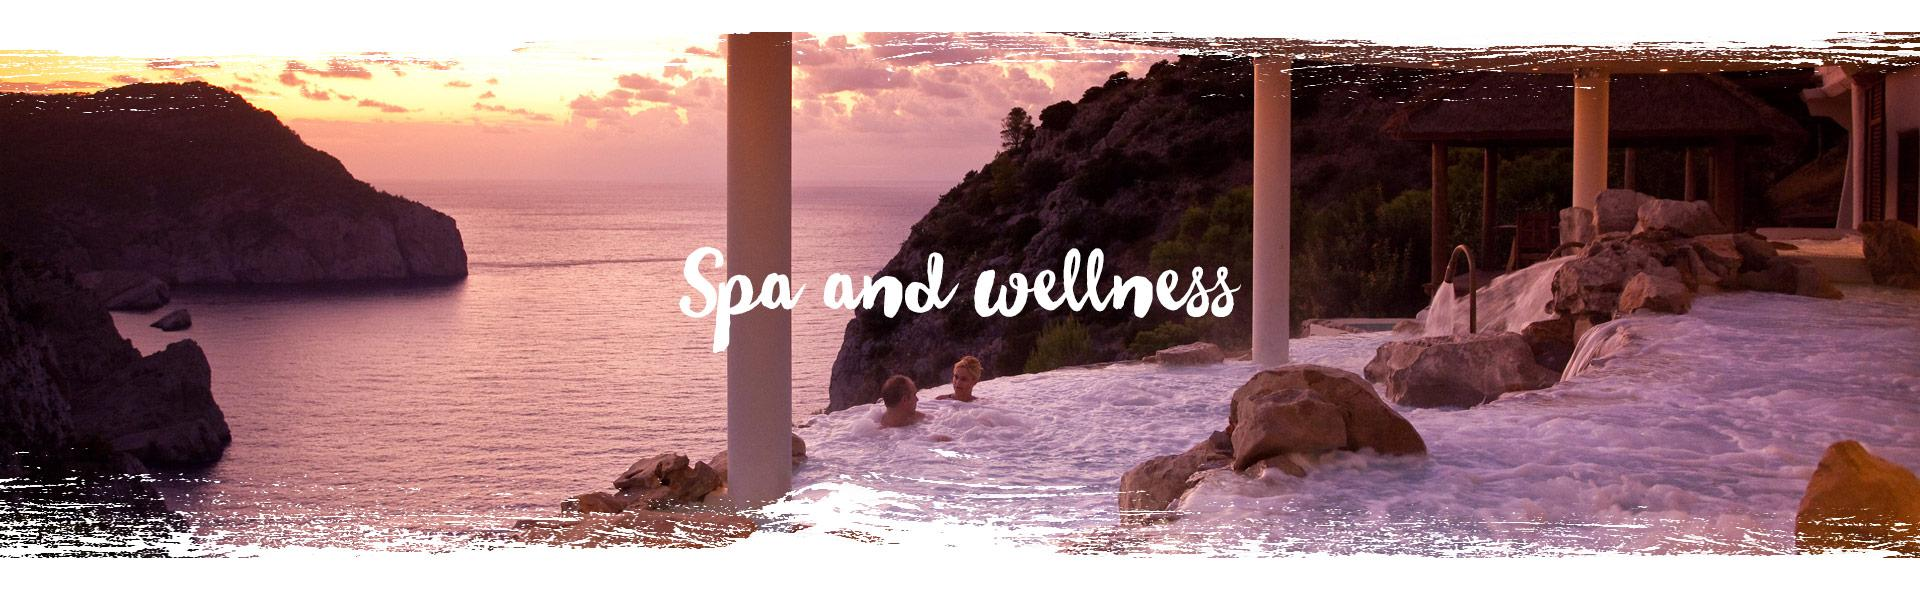 Spa y Wellnes ENG